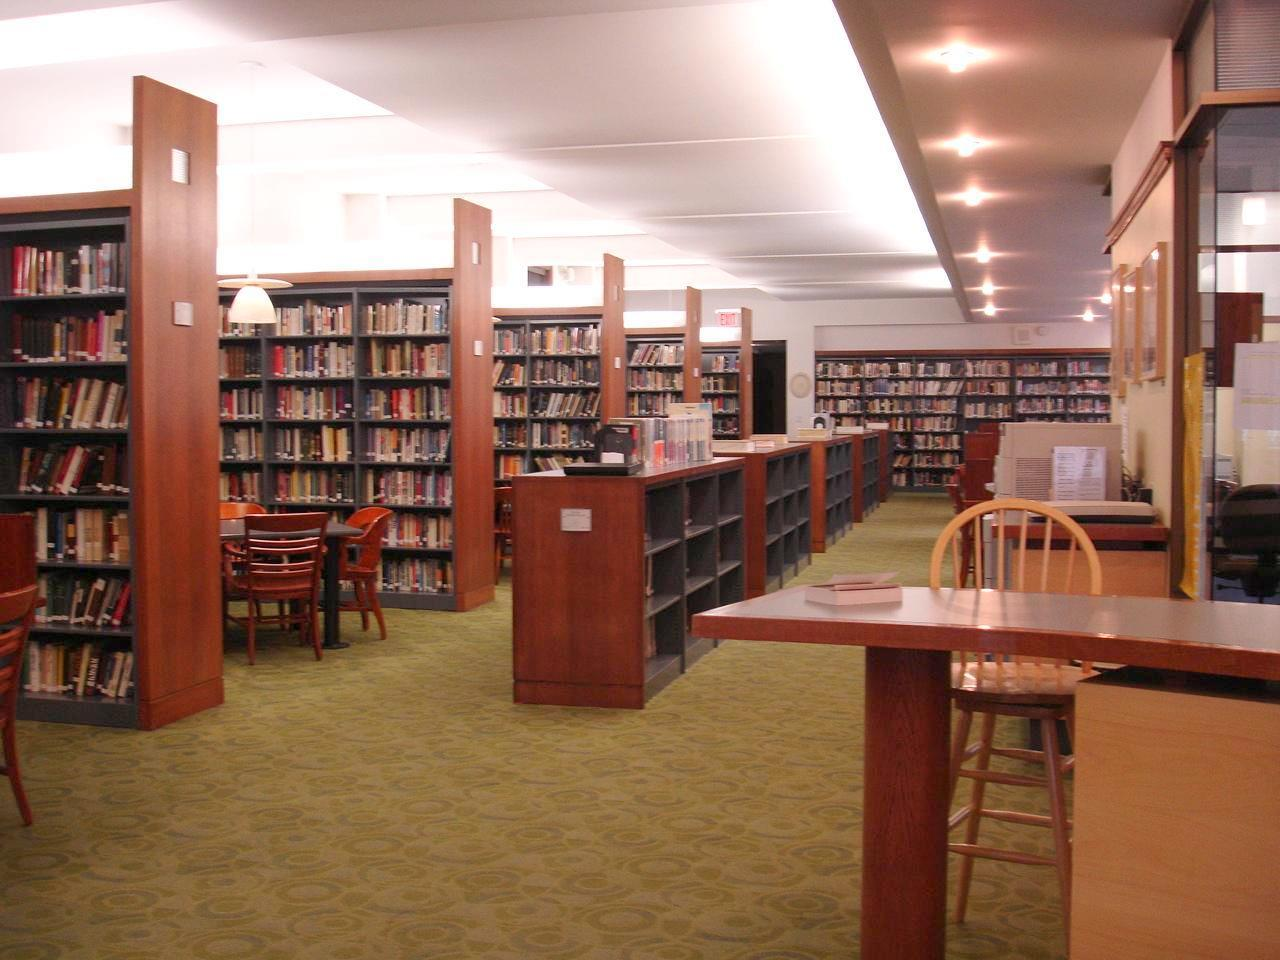 The library as reported by the hunterdon county democrat via nj com